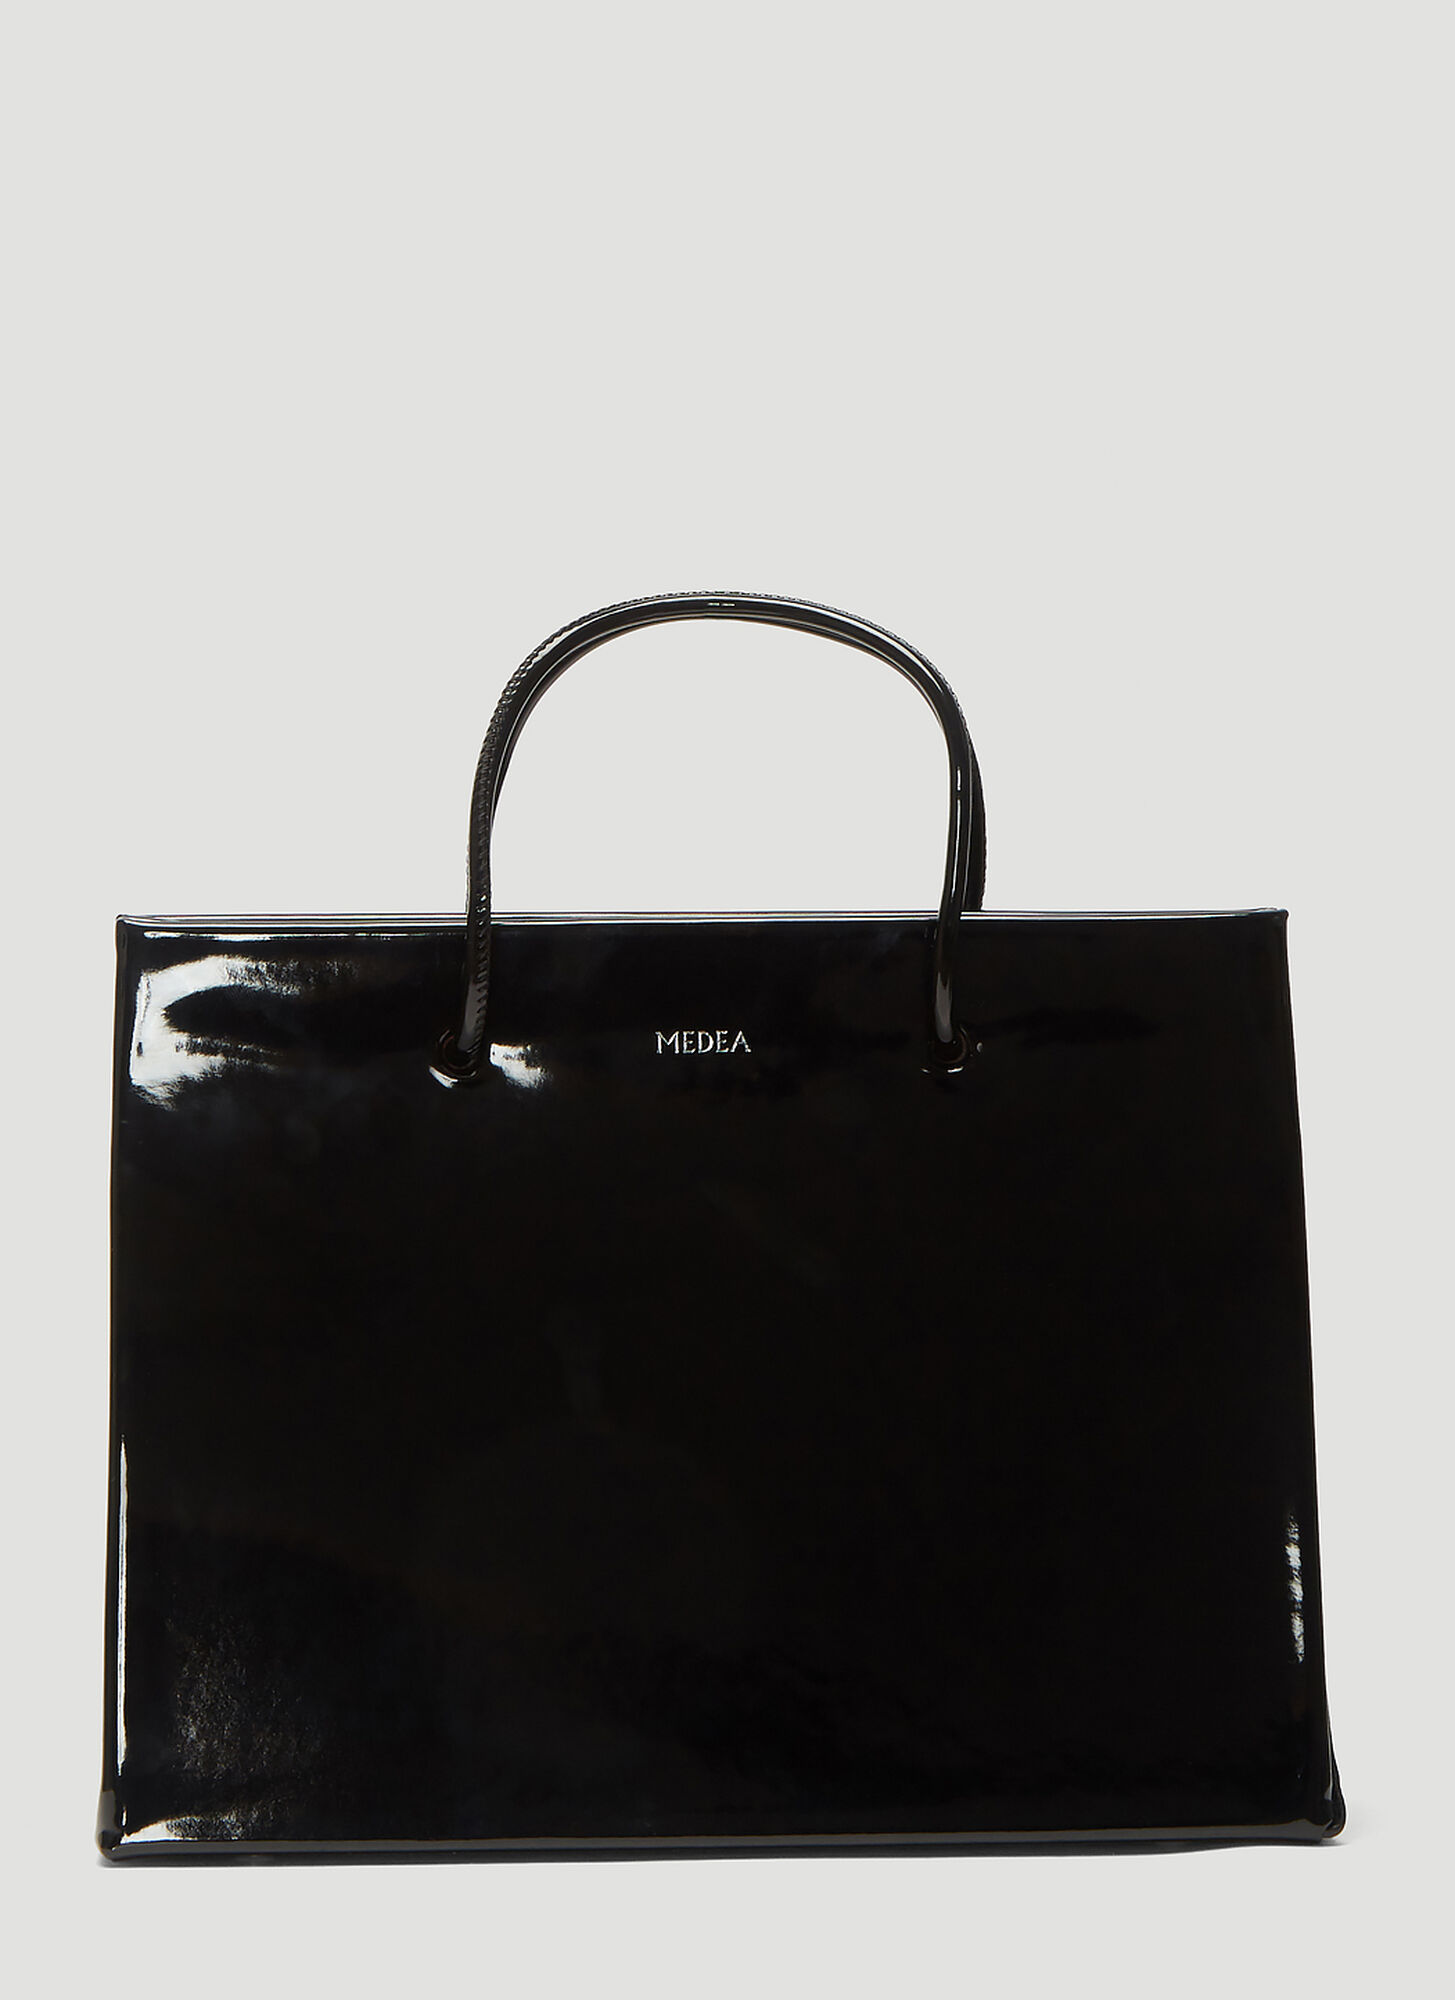 Medea Hanna Vinile Bag in Black